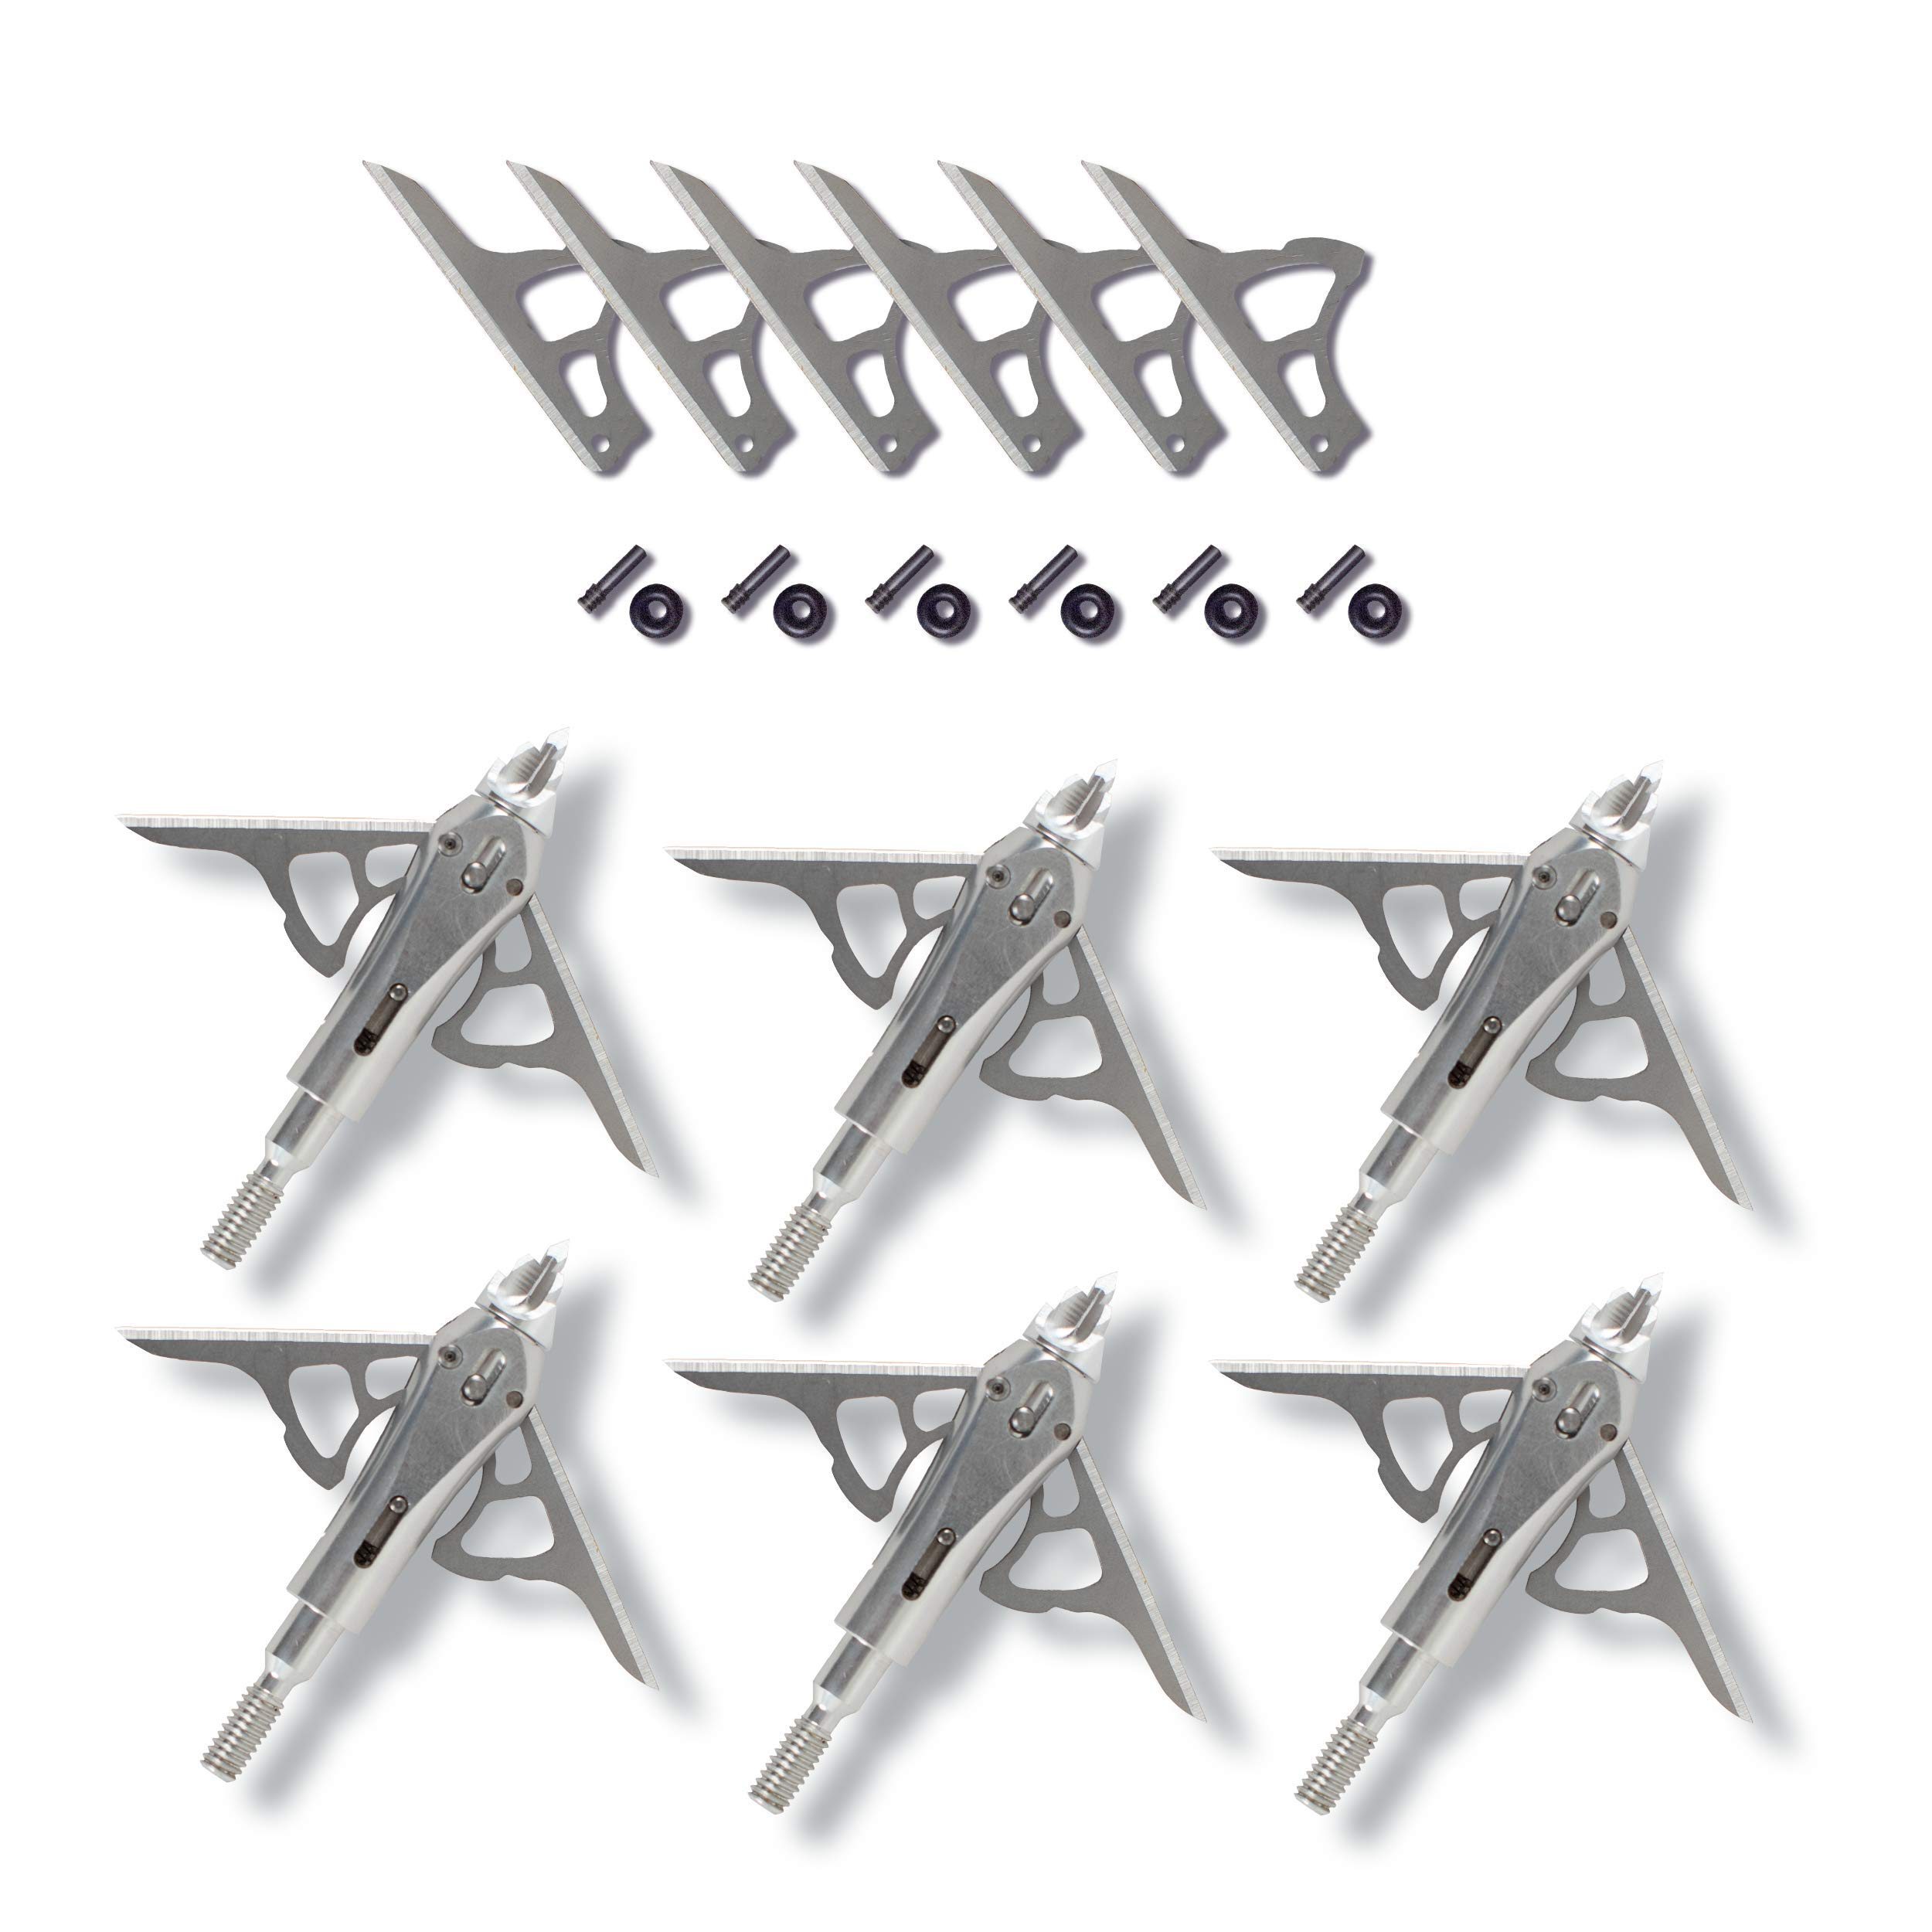 Ramcat Hydroshock Pivoting Broadhead /& Smoke Small Game 100 Grain Value Pack